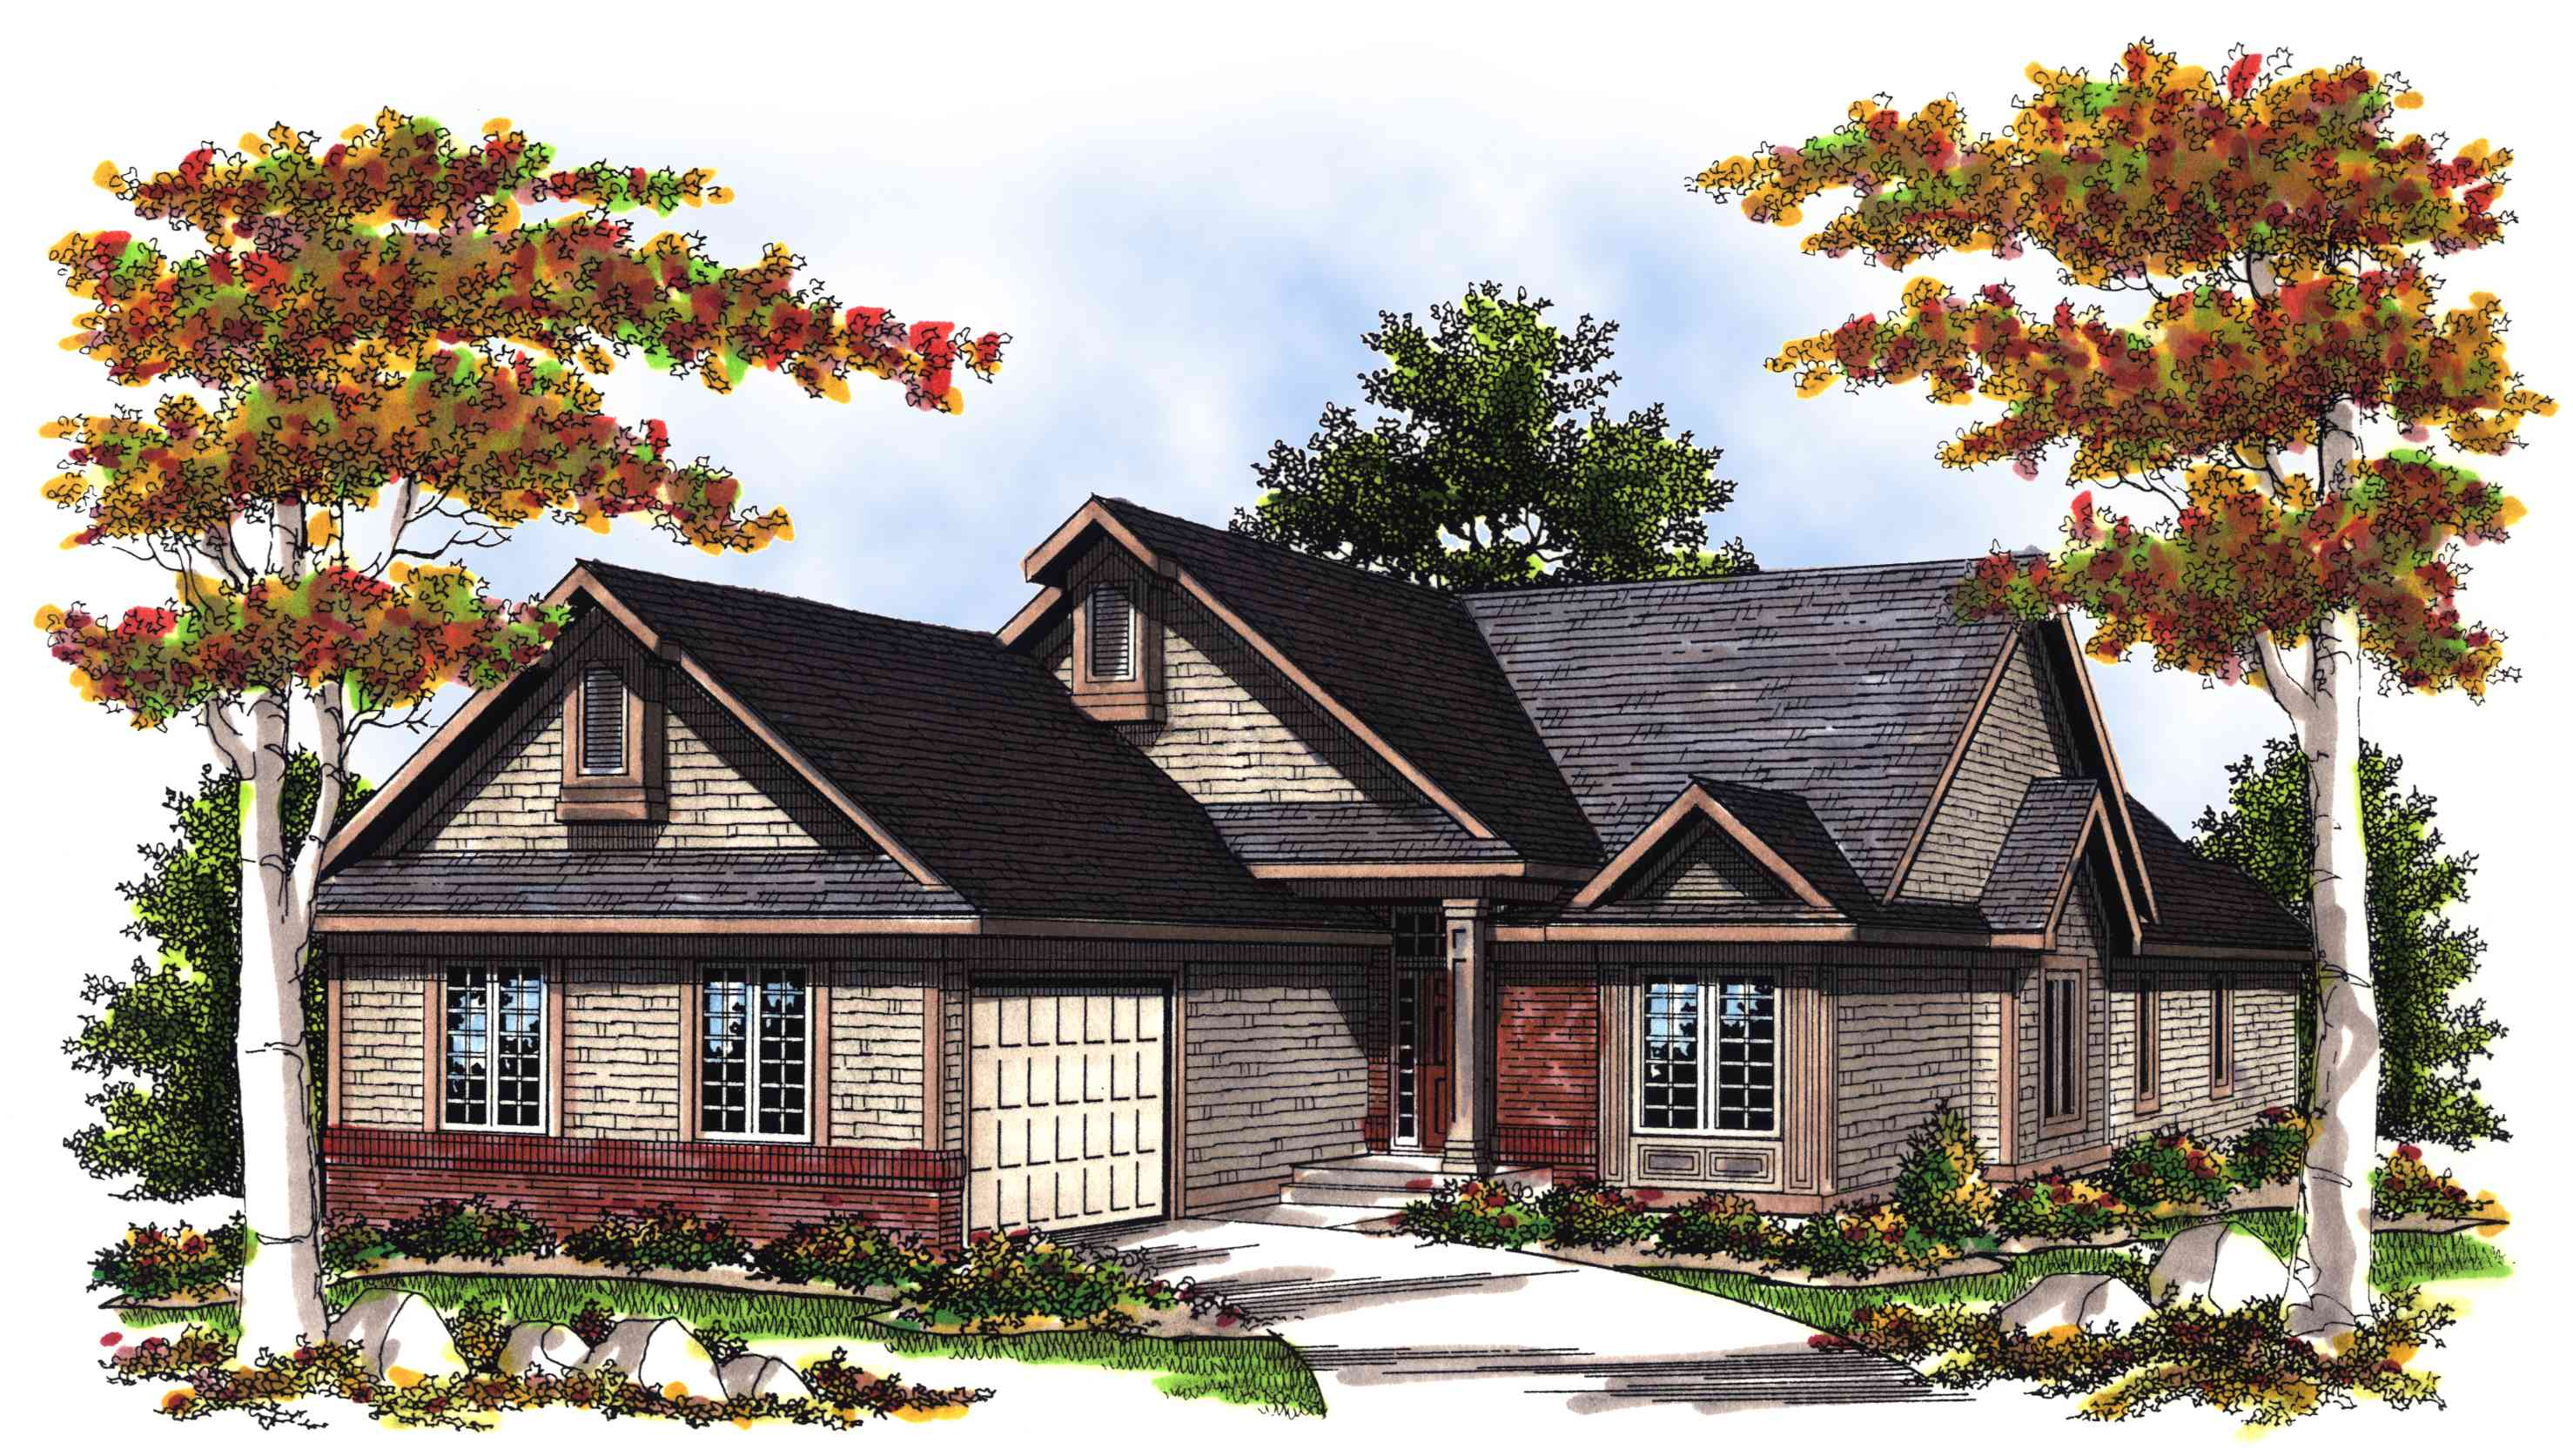 Vaulted Great Room House Plan - 89439ah Architectural